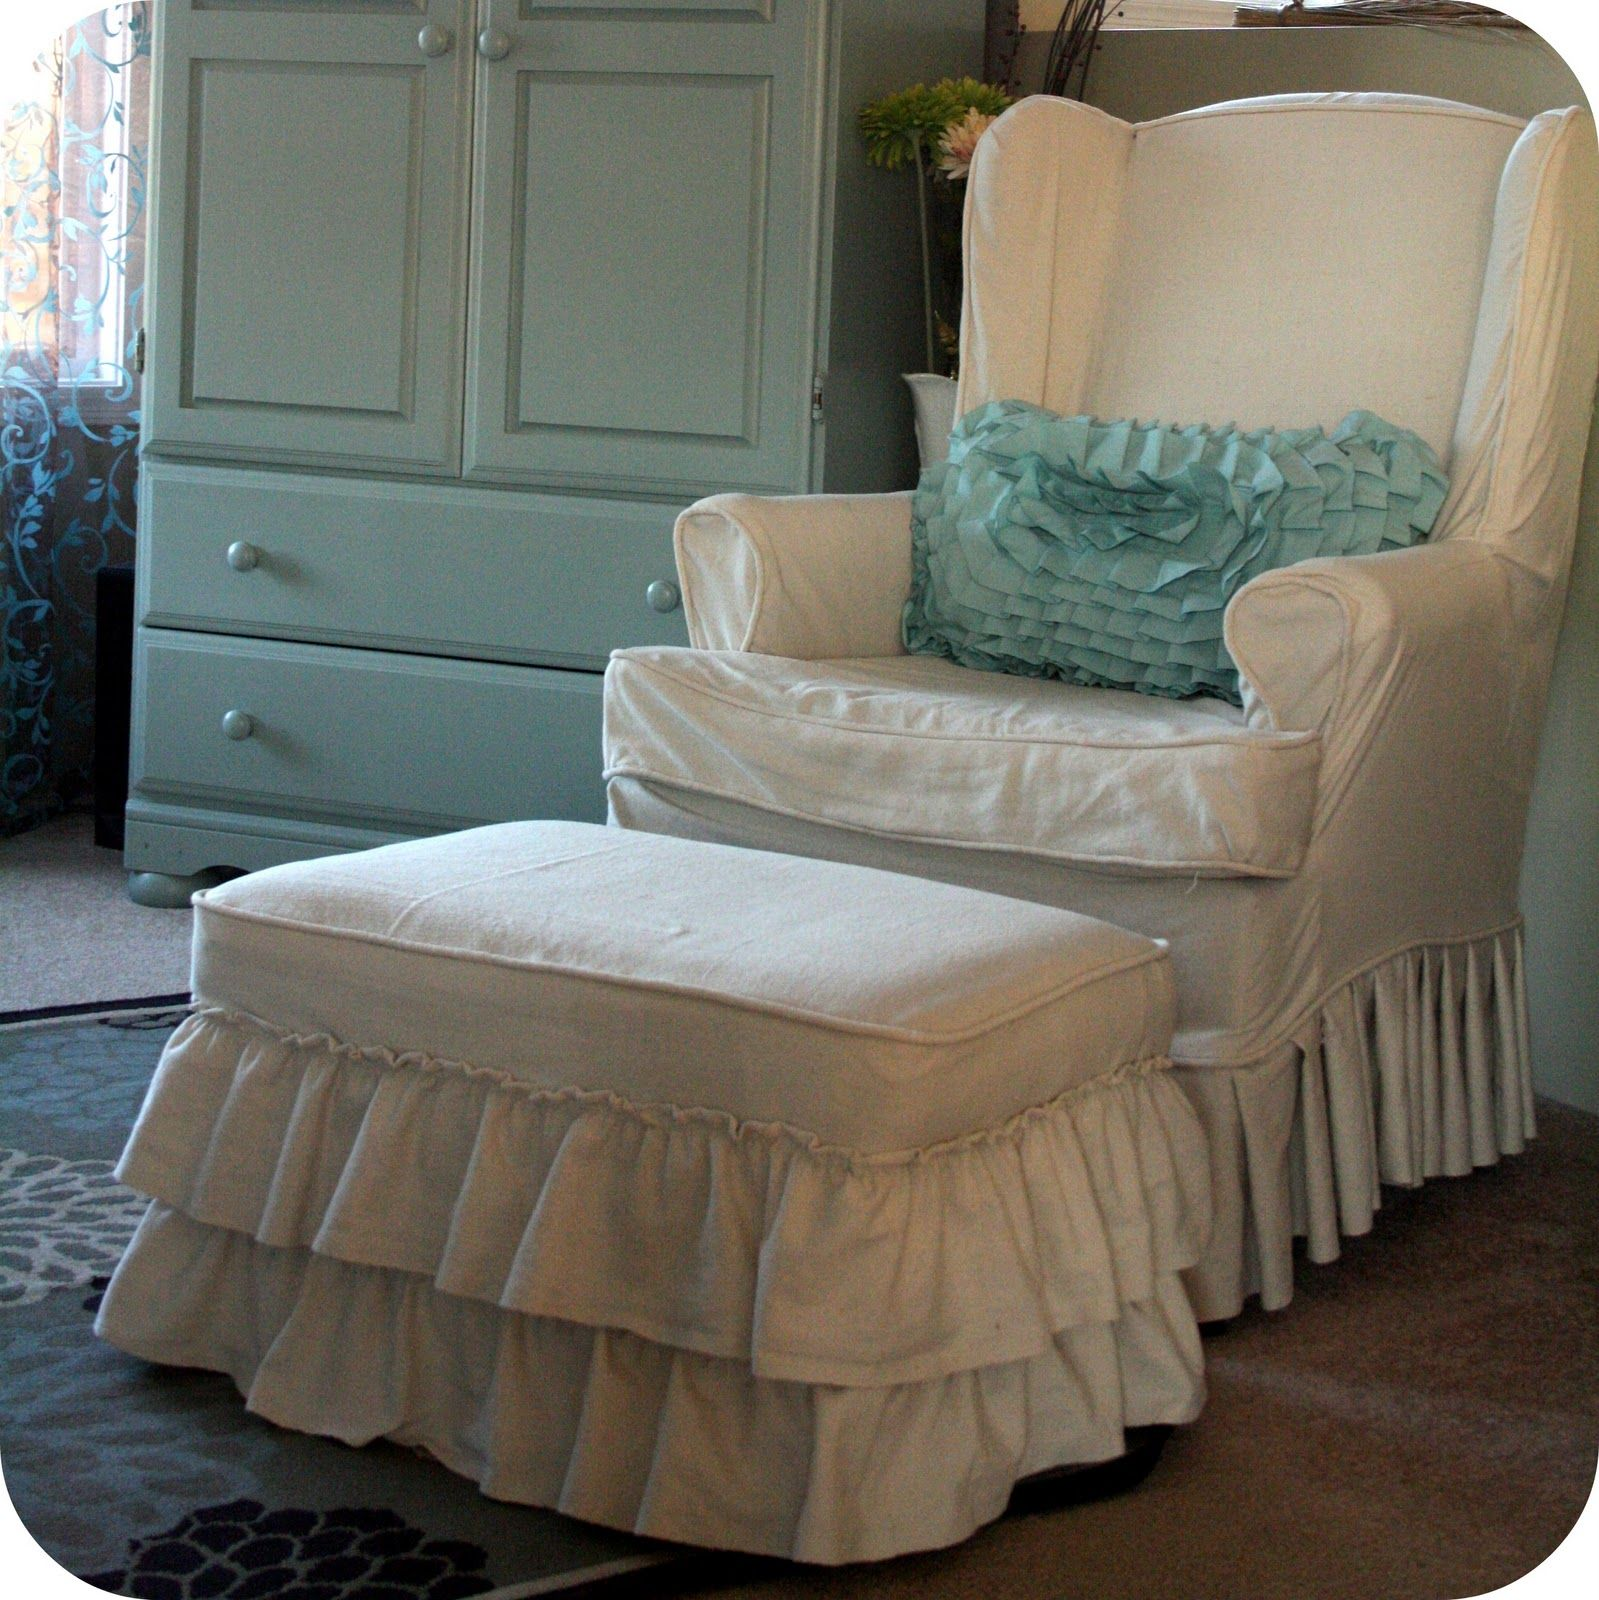 Creating At Home DIY Ruffles And Rosettes Slipcovered Ottoman